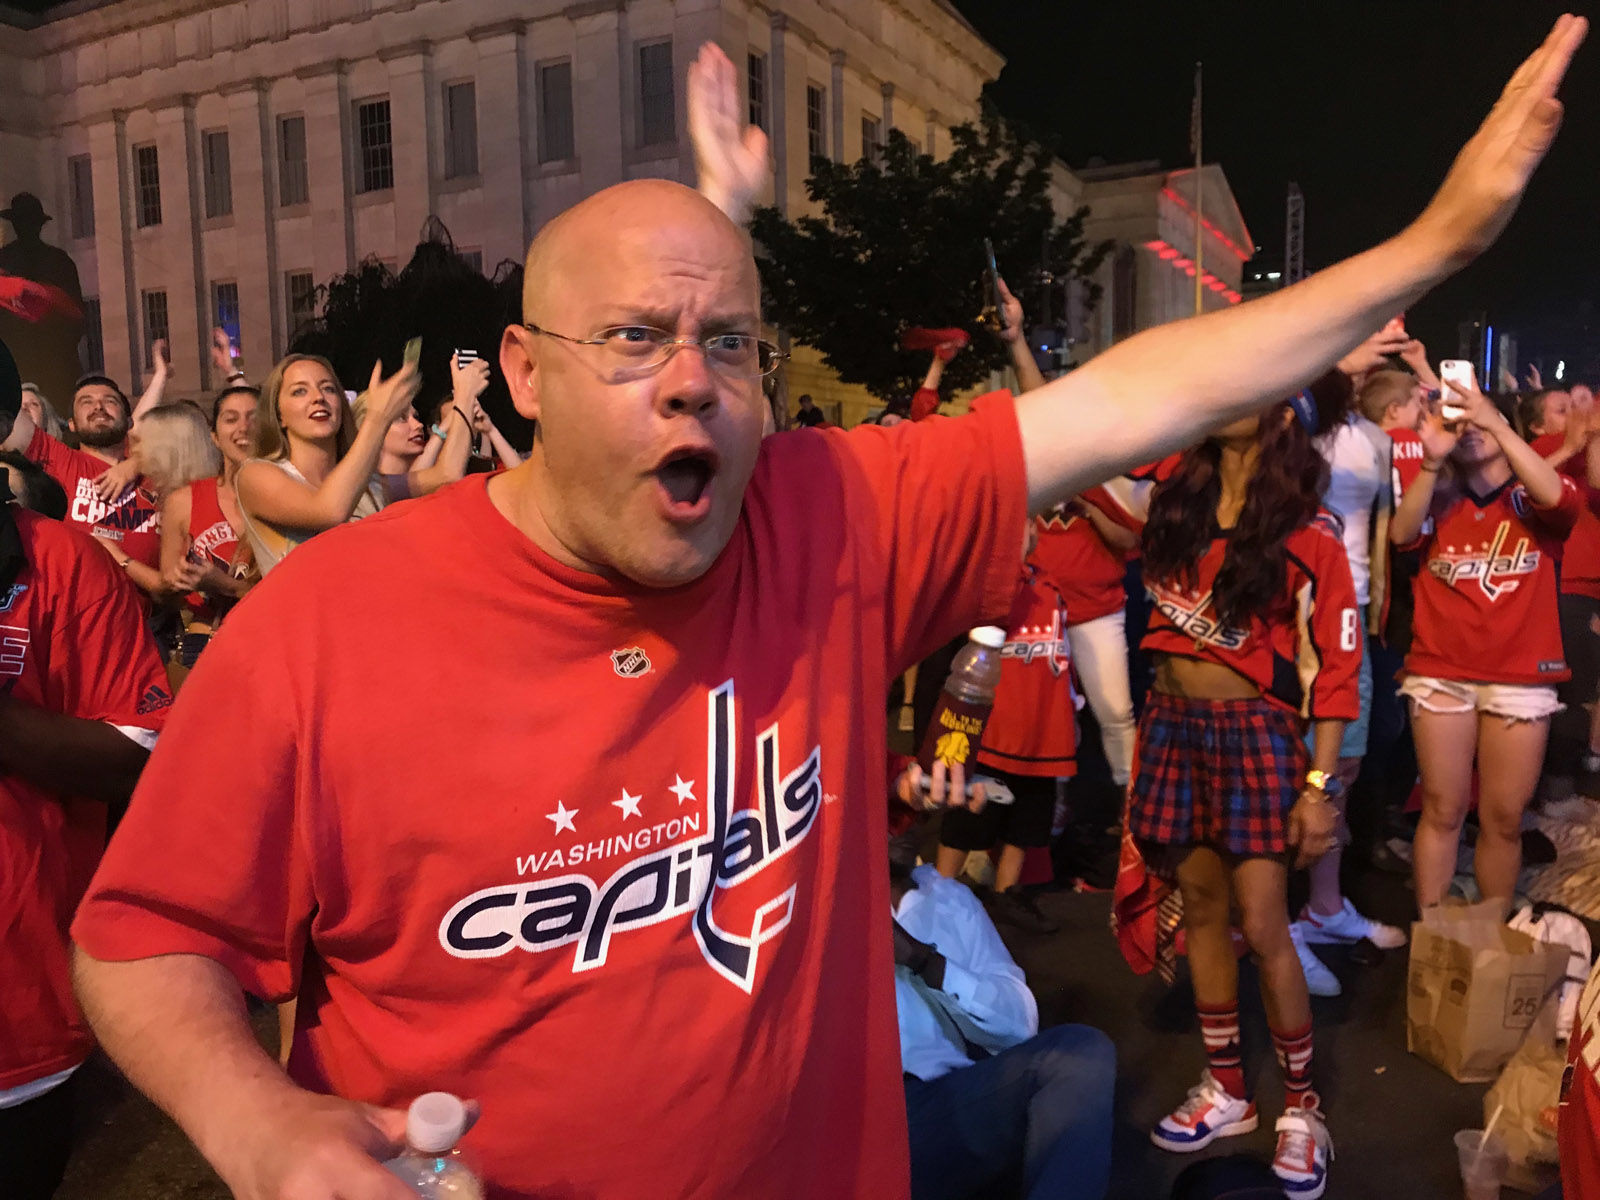 The Capitals are now just two wins away from winning their very first Stanley Cup. (WTOP/Dick Uliano)